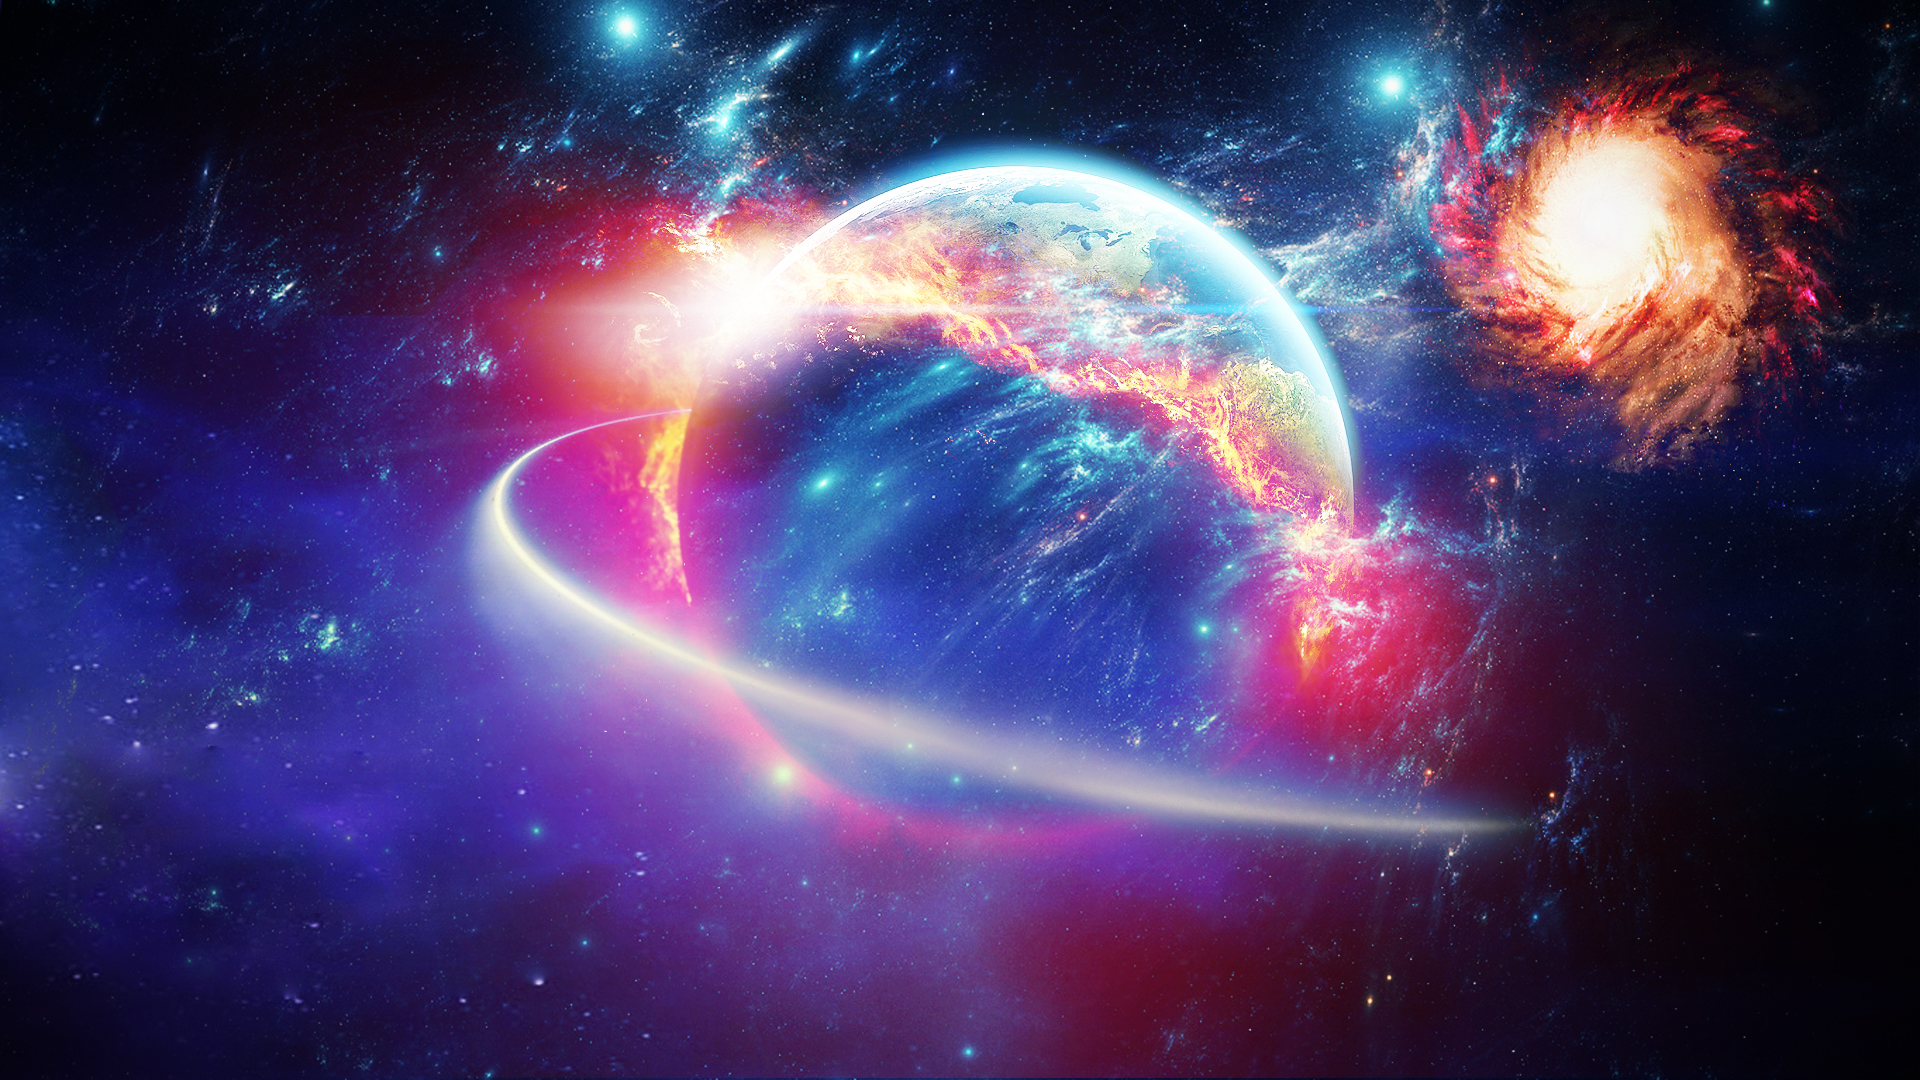 Galaxy Hd Wallpapers 1080p 75 Images: The End Of The Beginning (1080p Wallpaper) By Eddef On